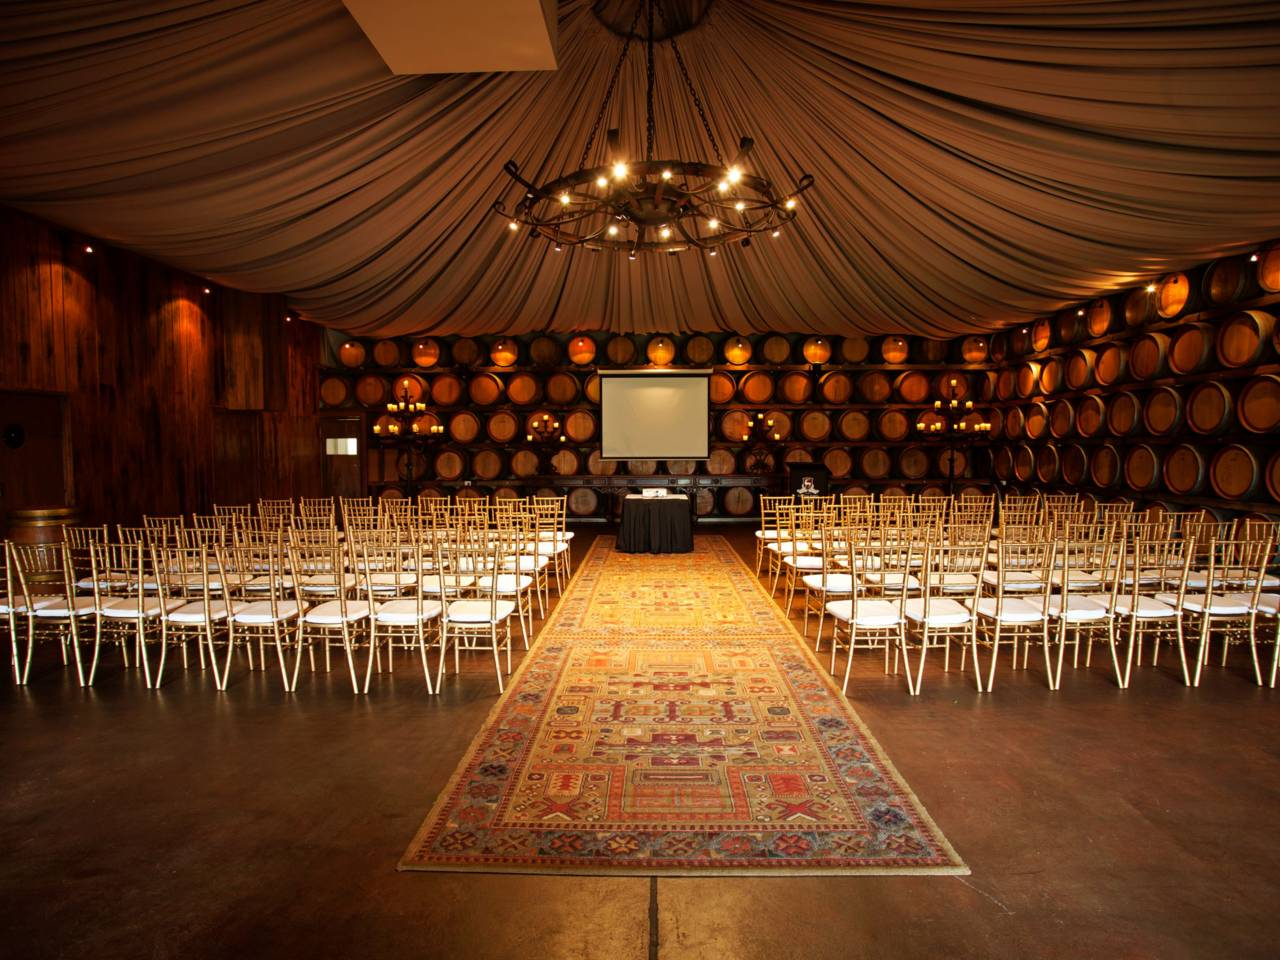 Conference Setup Inside The Function Room With Wine Casks As Wall With Projection Screen And A Chandelier